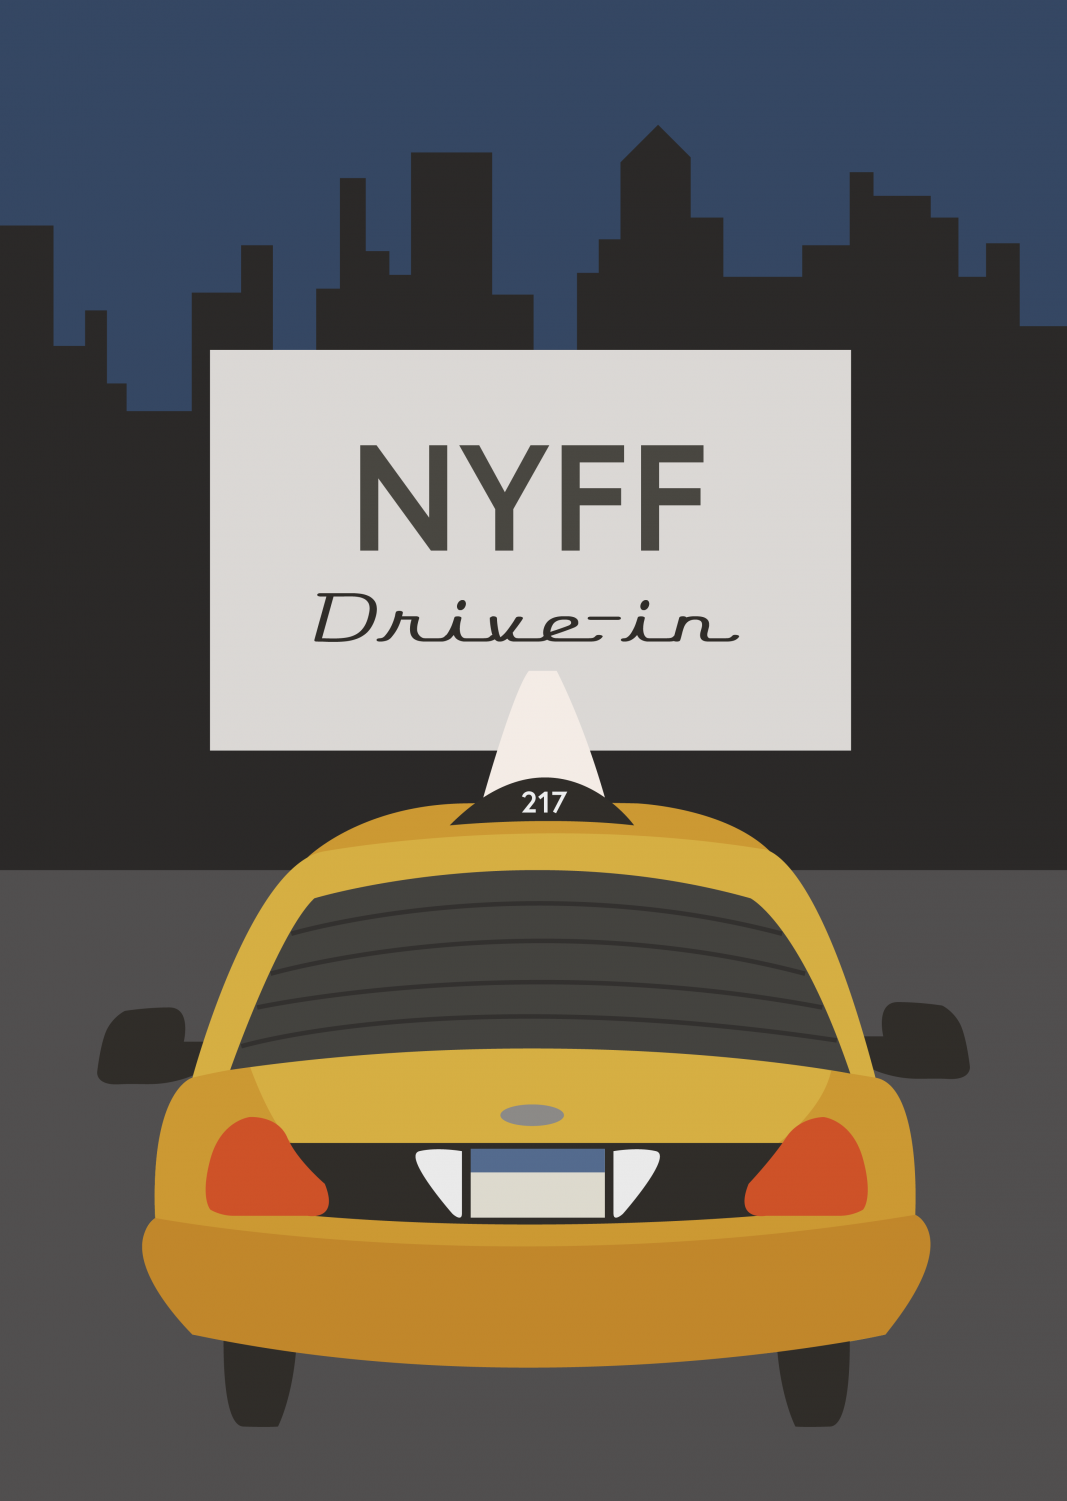 Drive In Theaters Go From Nostalgic To Necessary For This Year S New York Film Festival The Observer